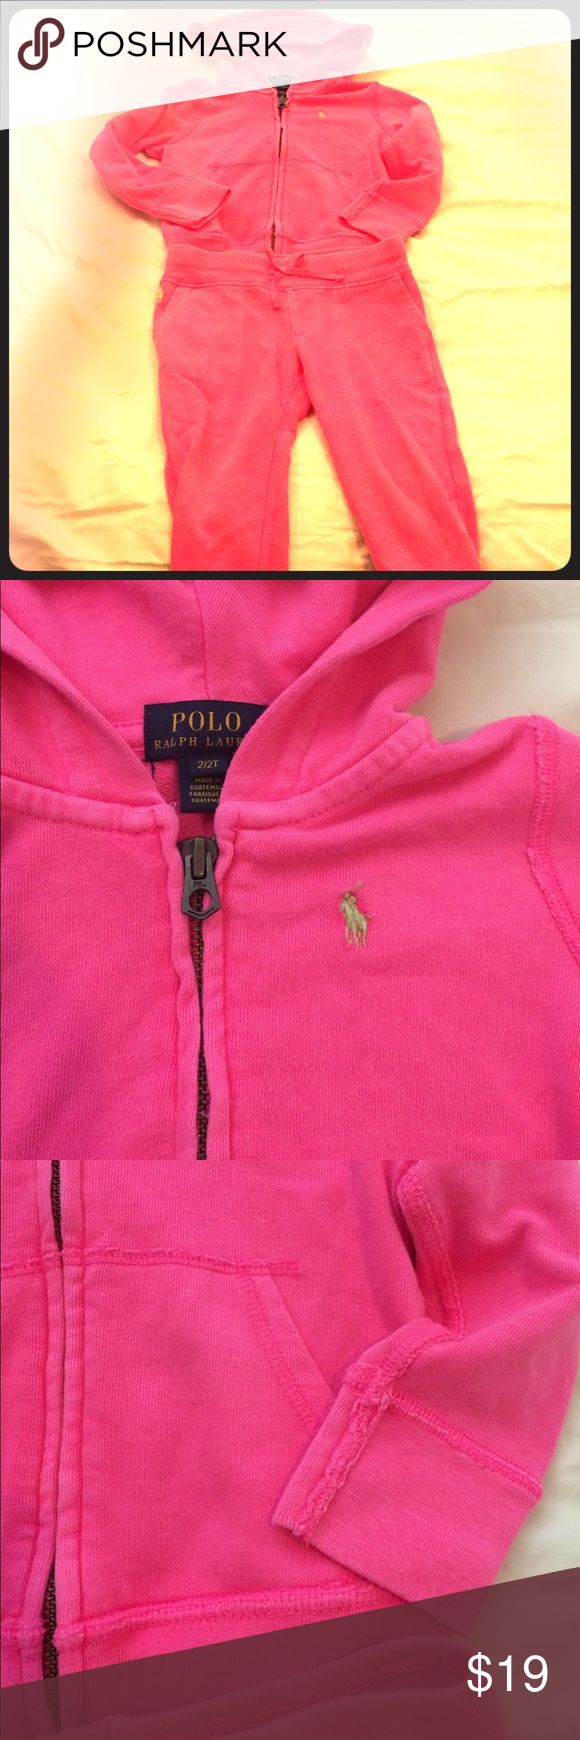 Polo sweatpants set girls size 2t Lovely girly pants No rips holes or stains  Good preloved condition  Check my closet and bundle Polo by Ralph Lauren Matching Sets